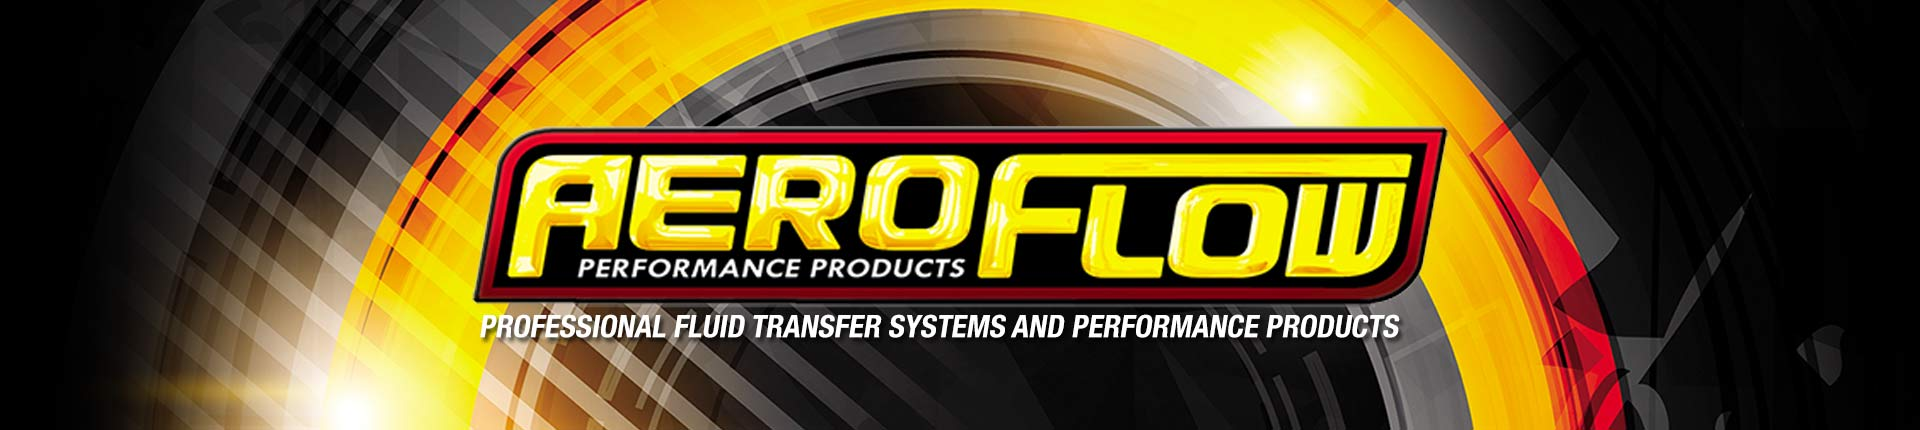 Professional fluid transfer systems and performance products